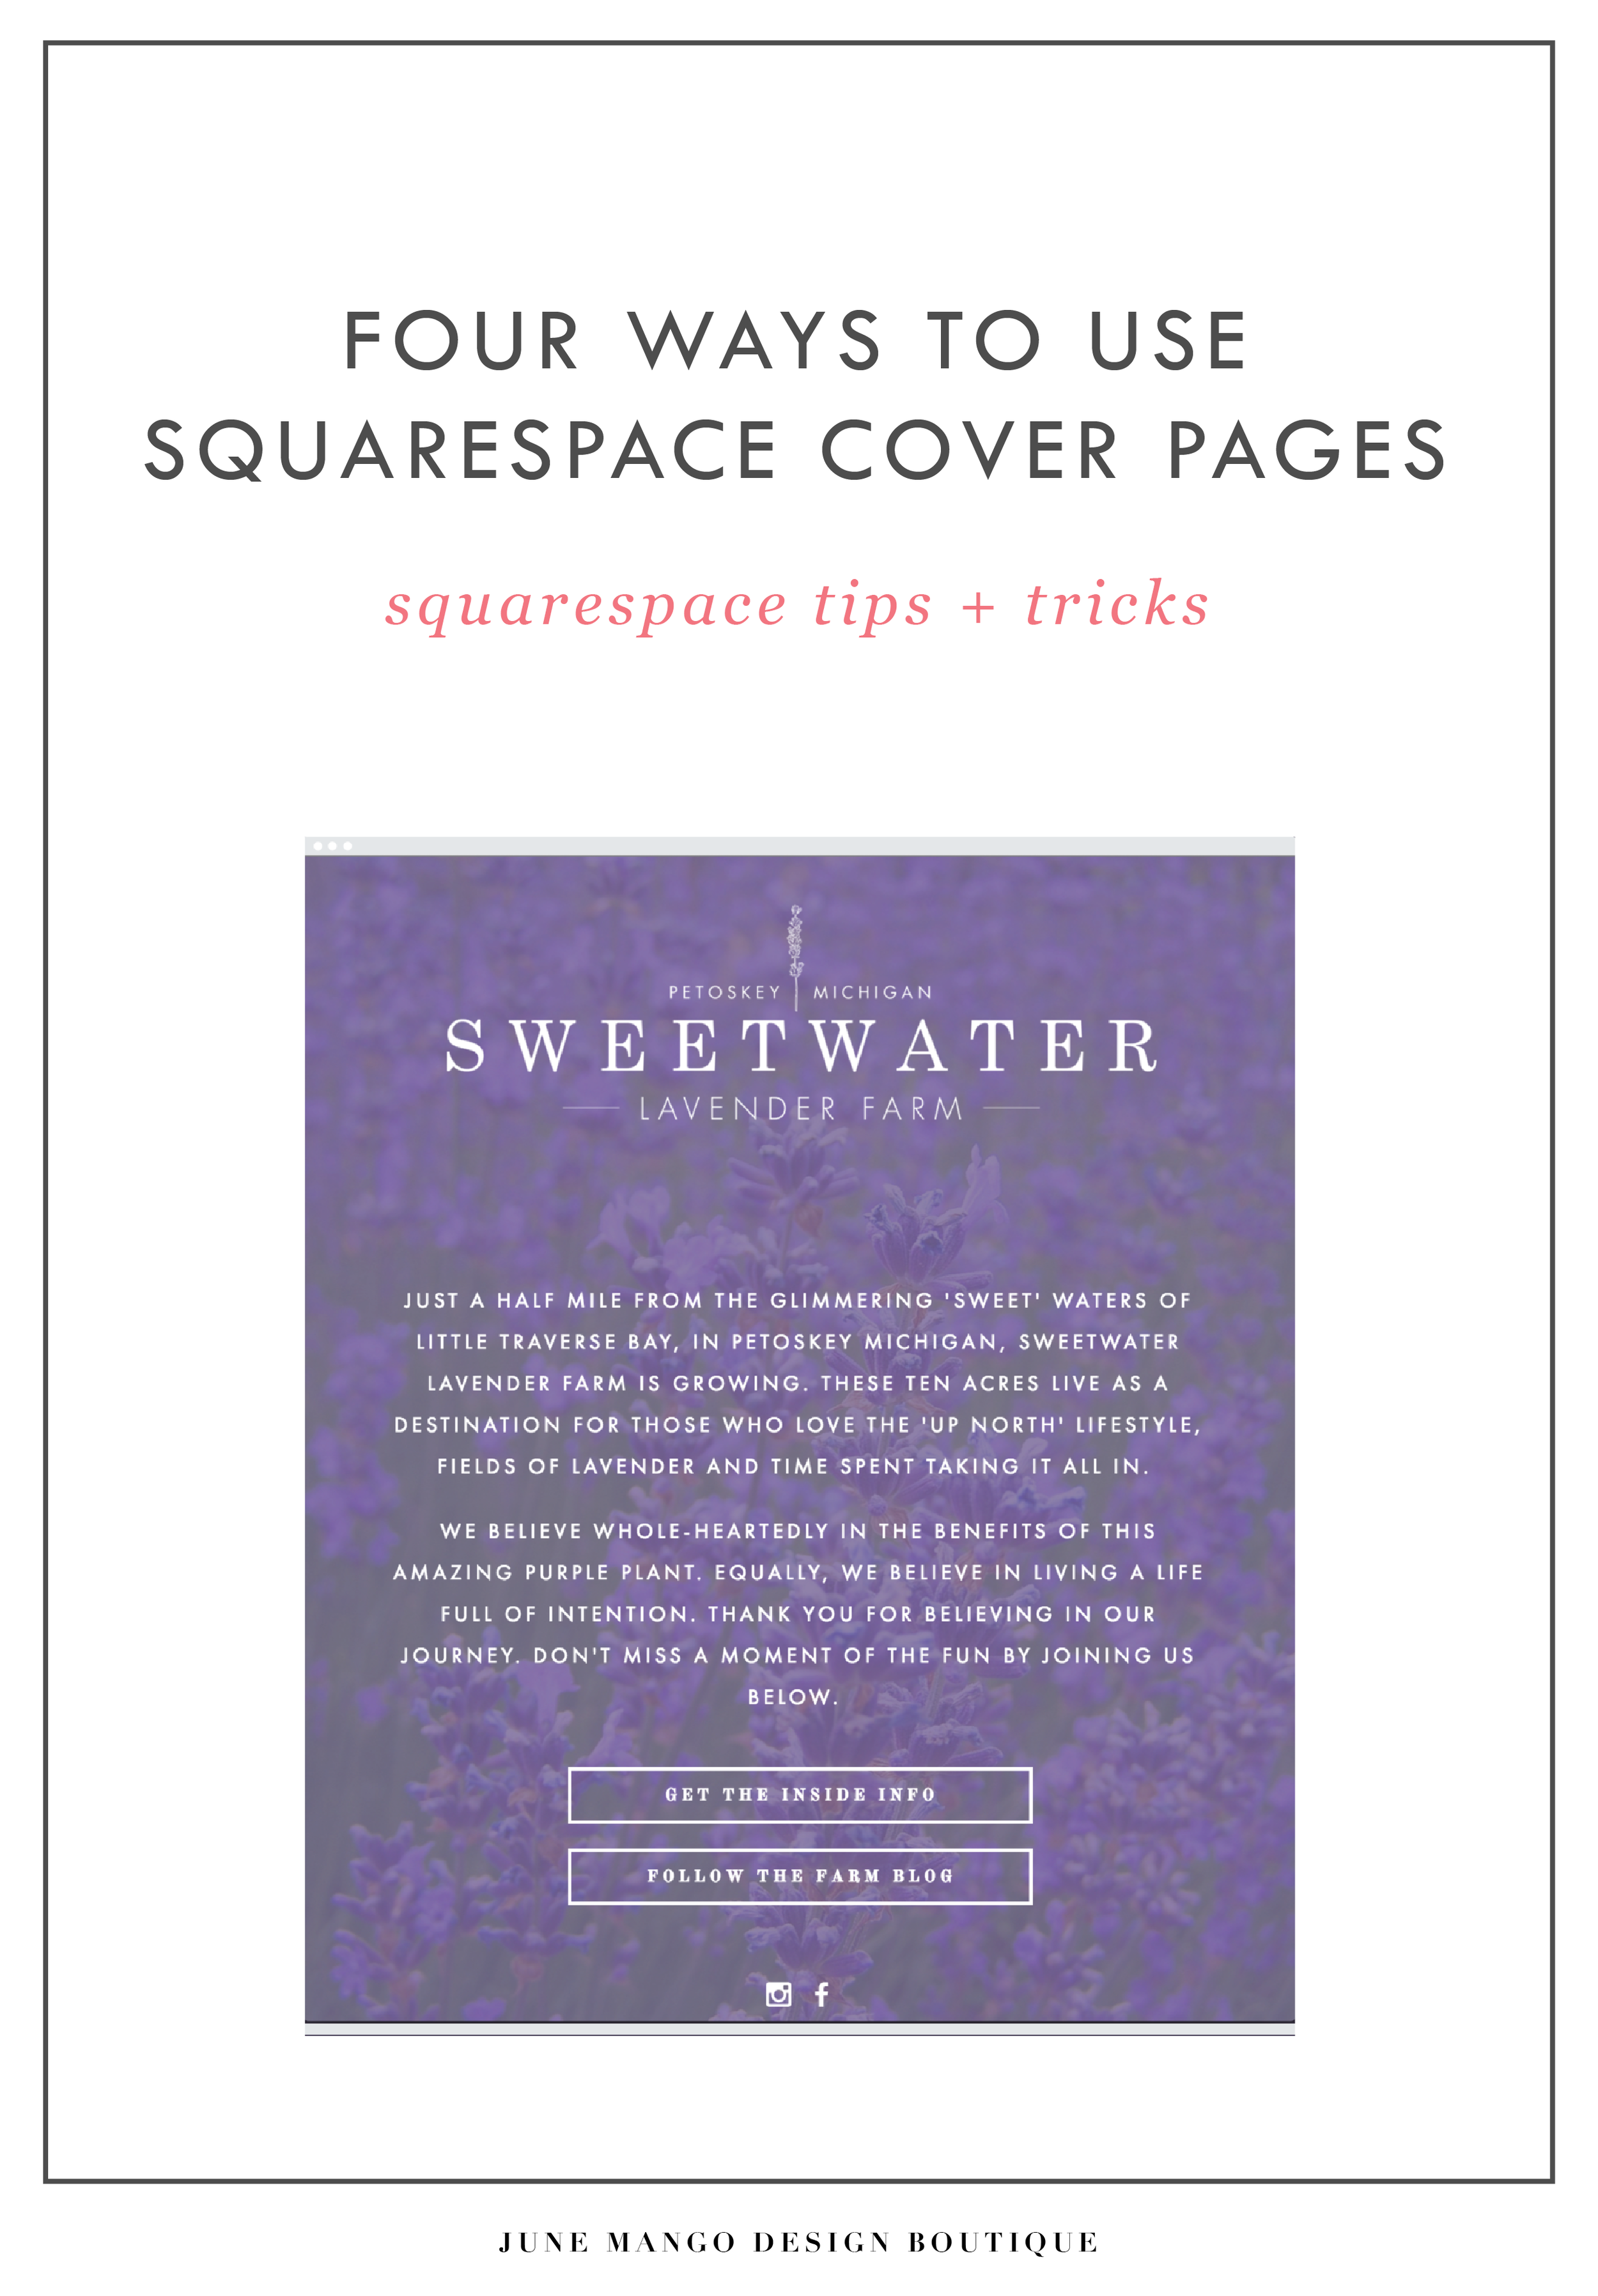 4-ways-to-use-squarespace-cover-pages-05.png